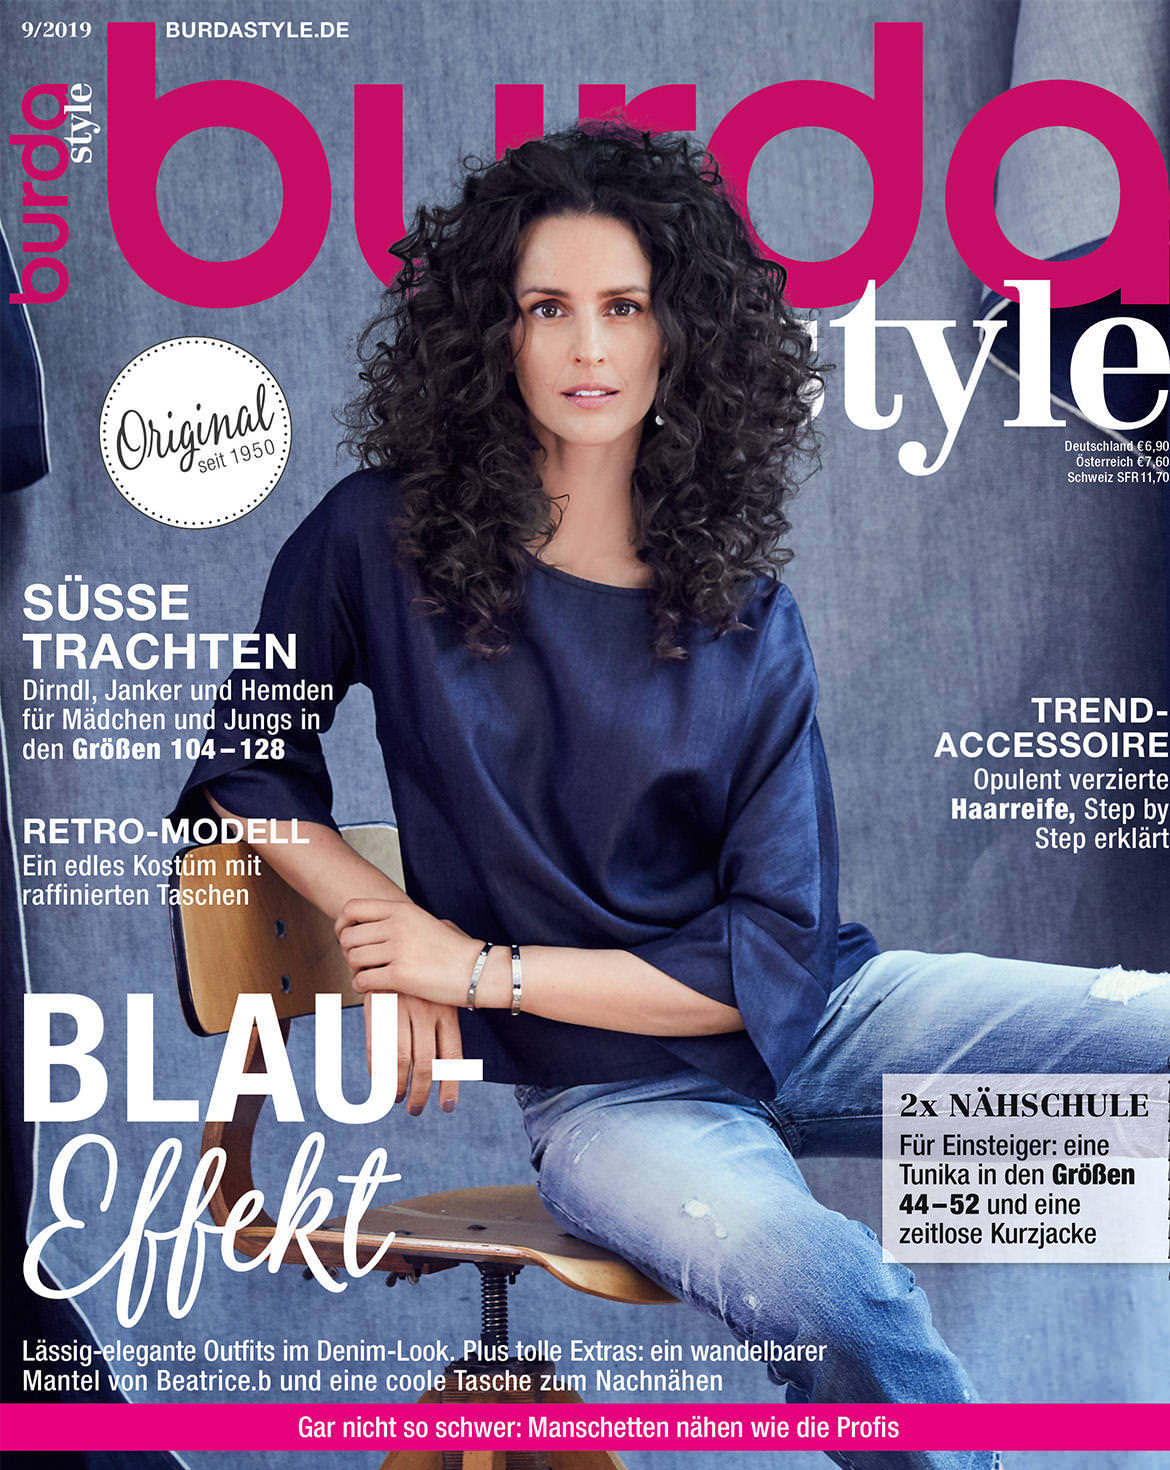 burda style Ausgabe September 2019